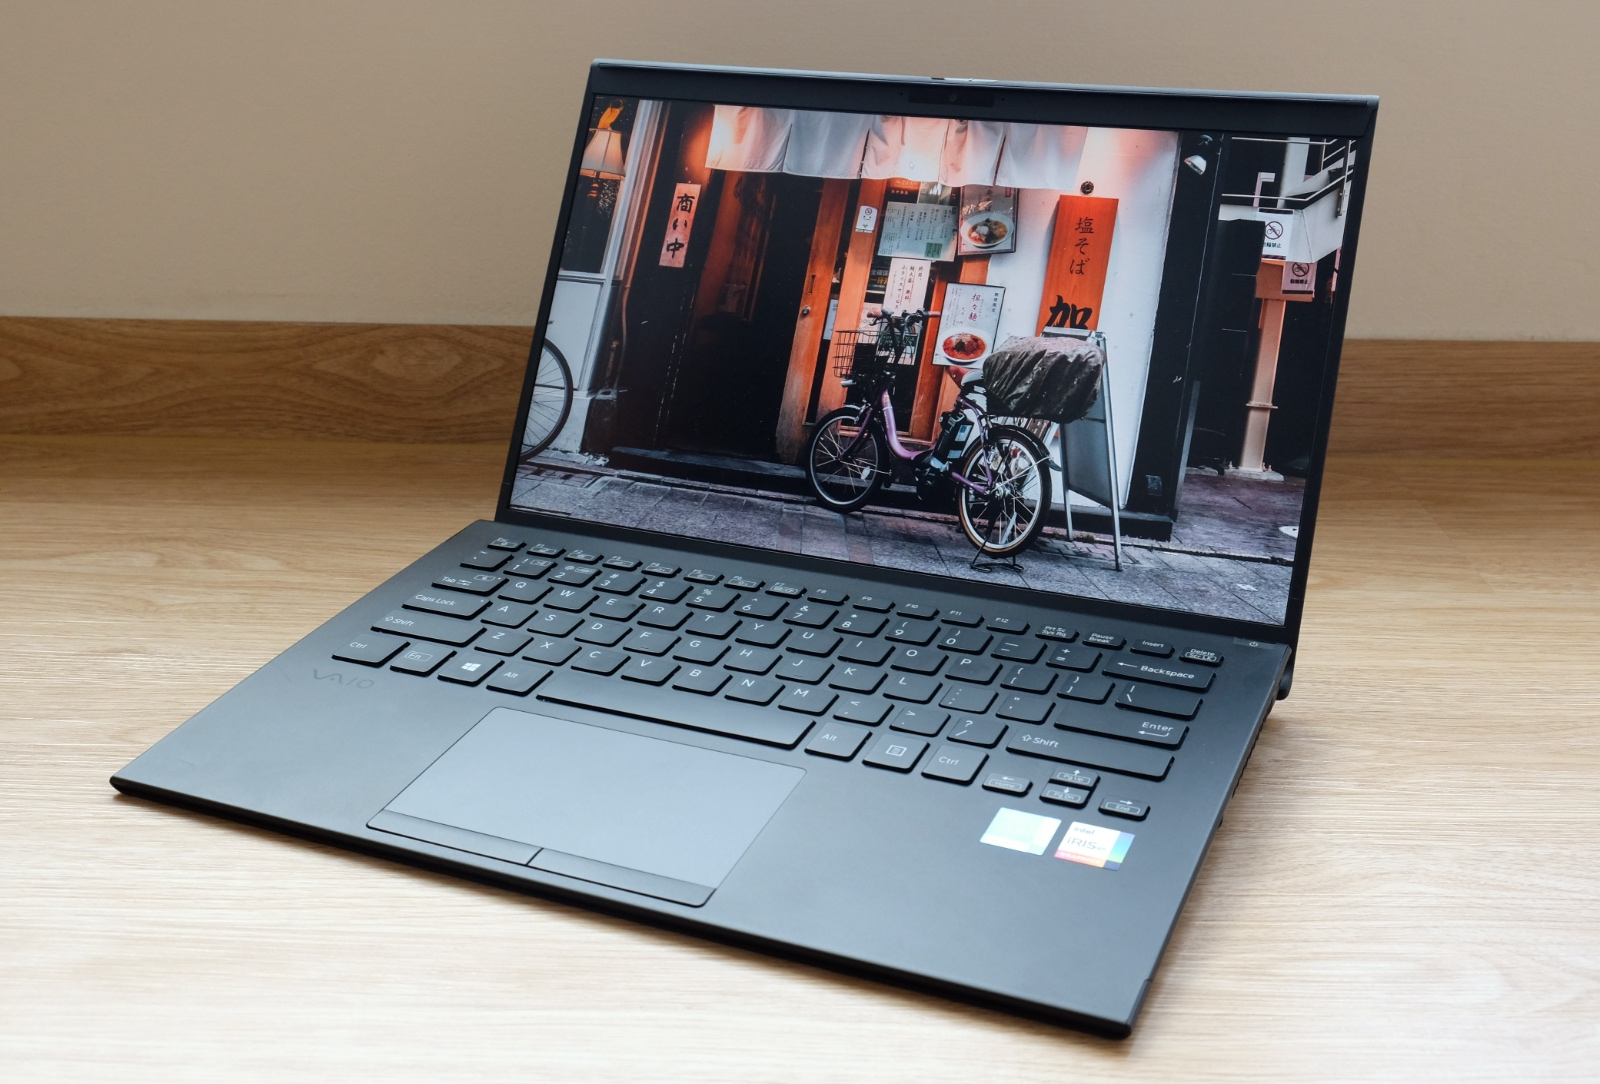 The Vaio Z does some interesting things but it's hard to get past that price tag.